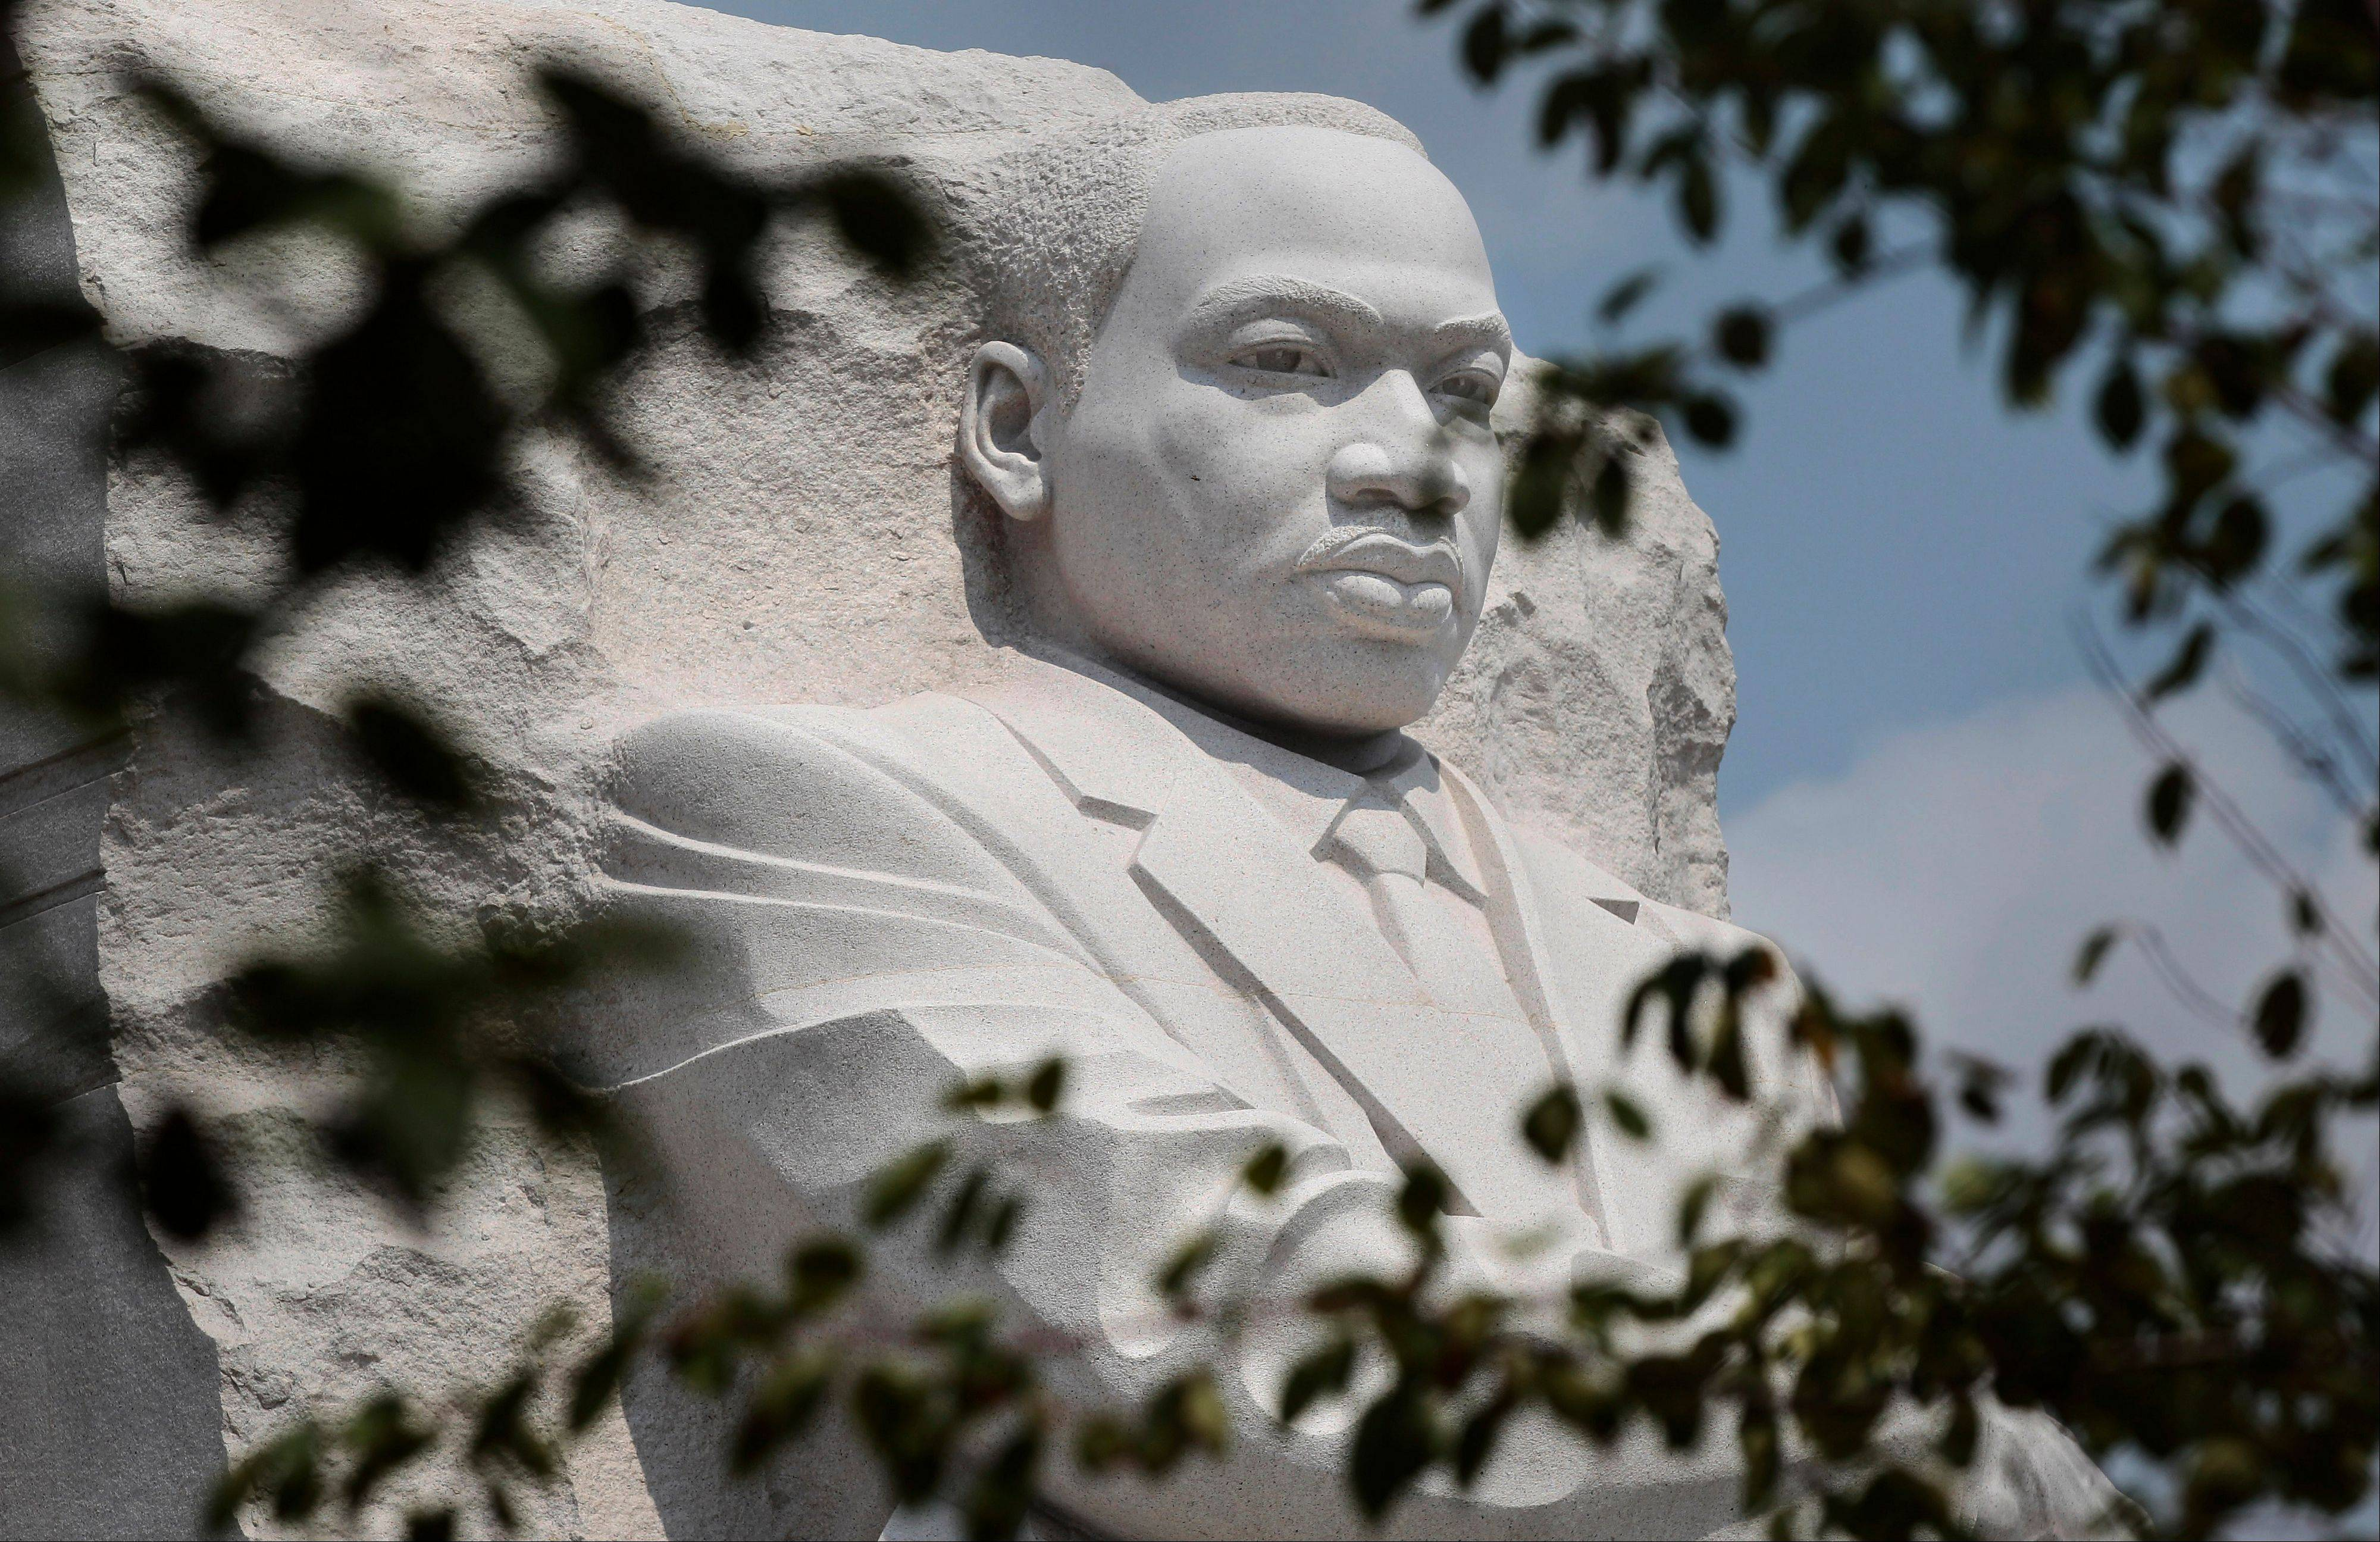 A detail of the memorial to the Rev. Martin Luther King Jr. is seen on the National Mall in Washington.